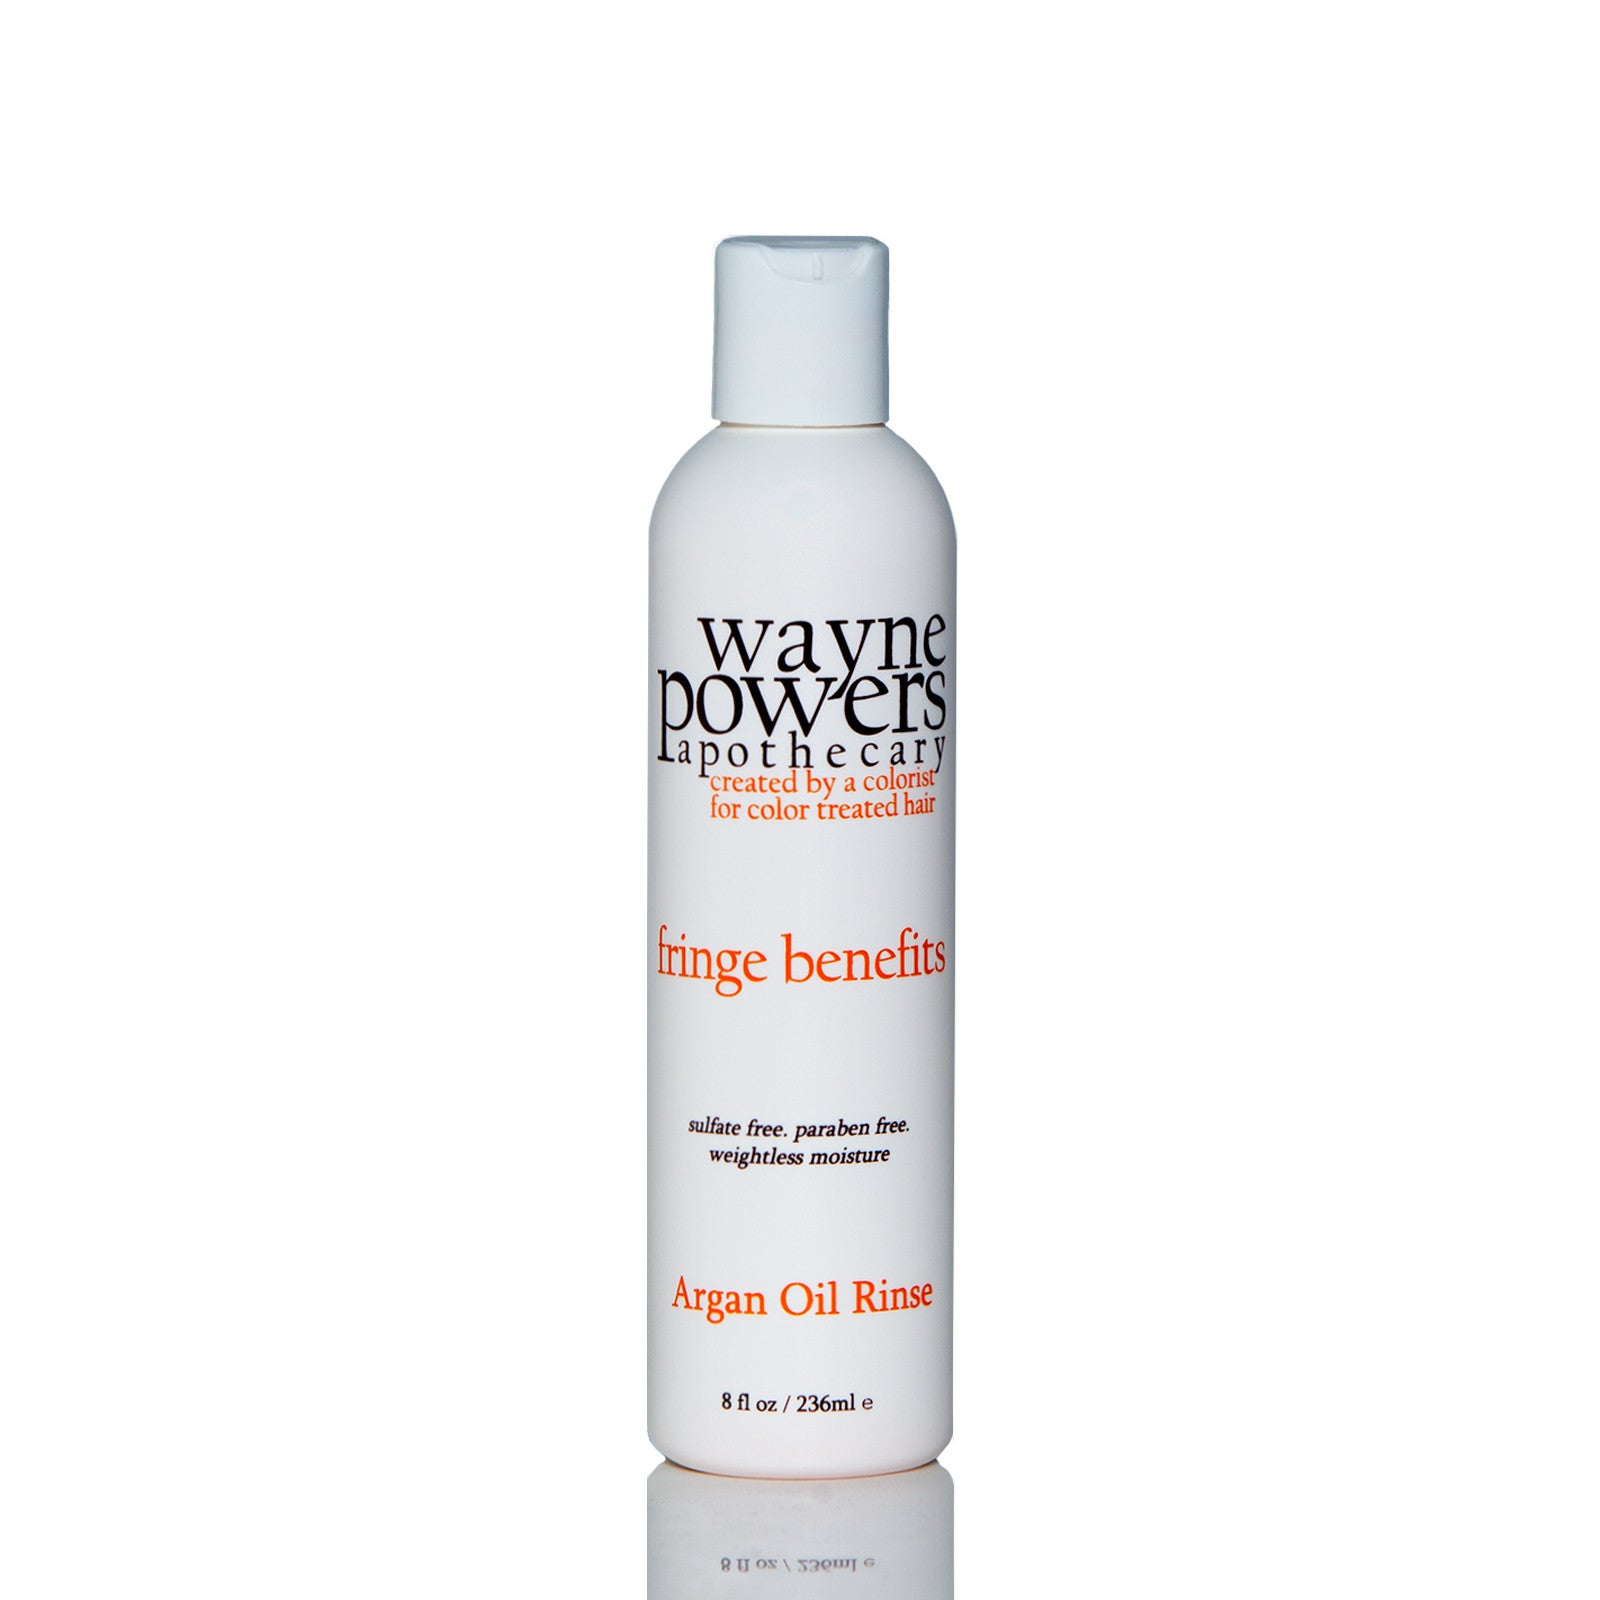 Fringe Benefits Argan Oil Rinse by Wayne Powers Apothecary